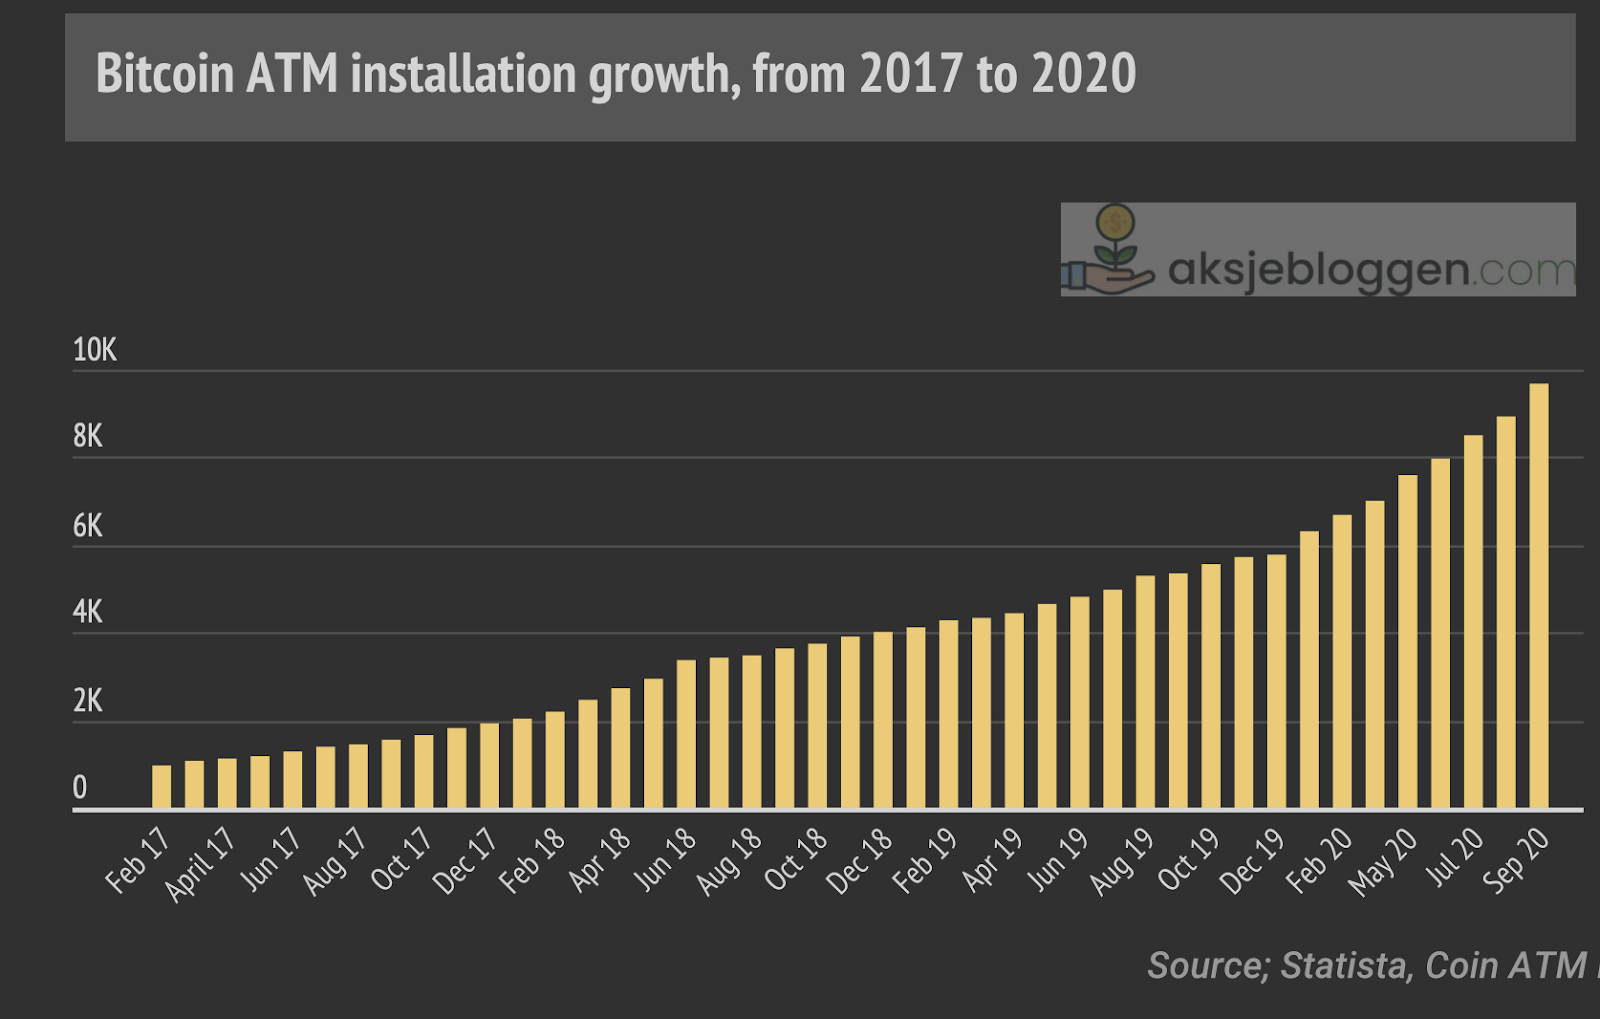 Bitcoin_ATM_Installation_Growth.png